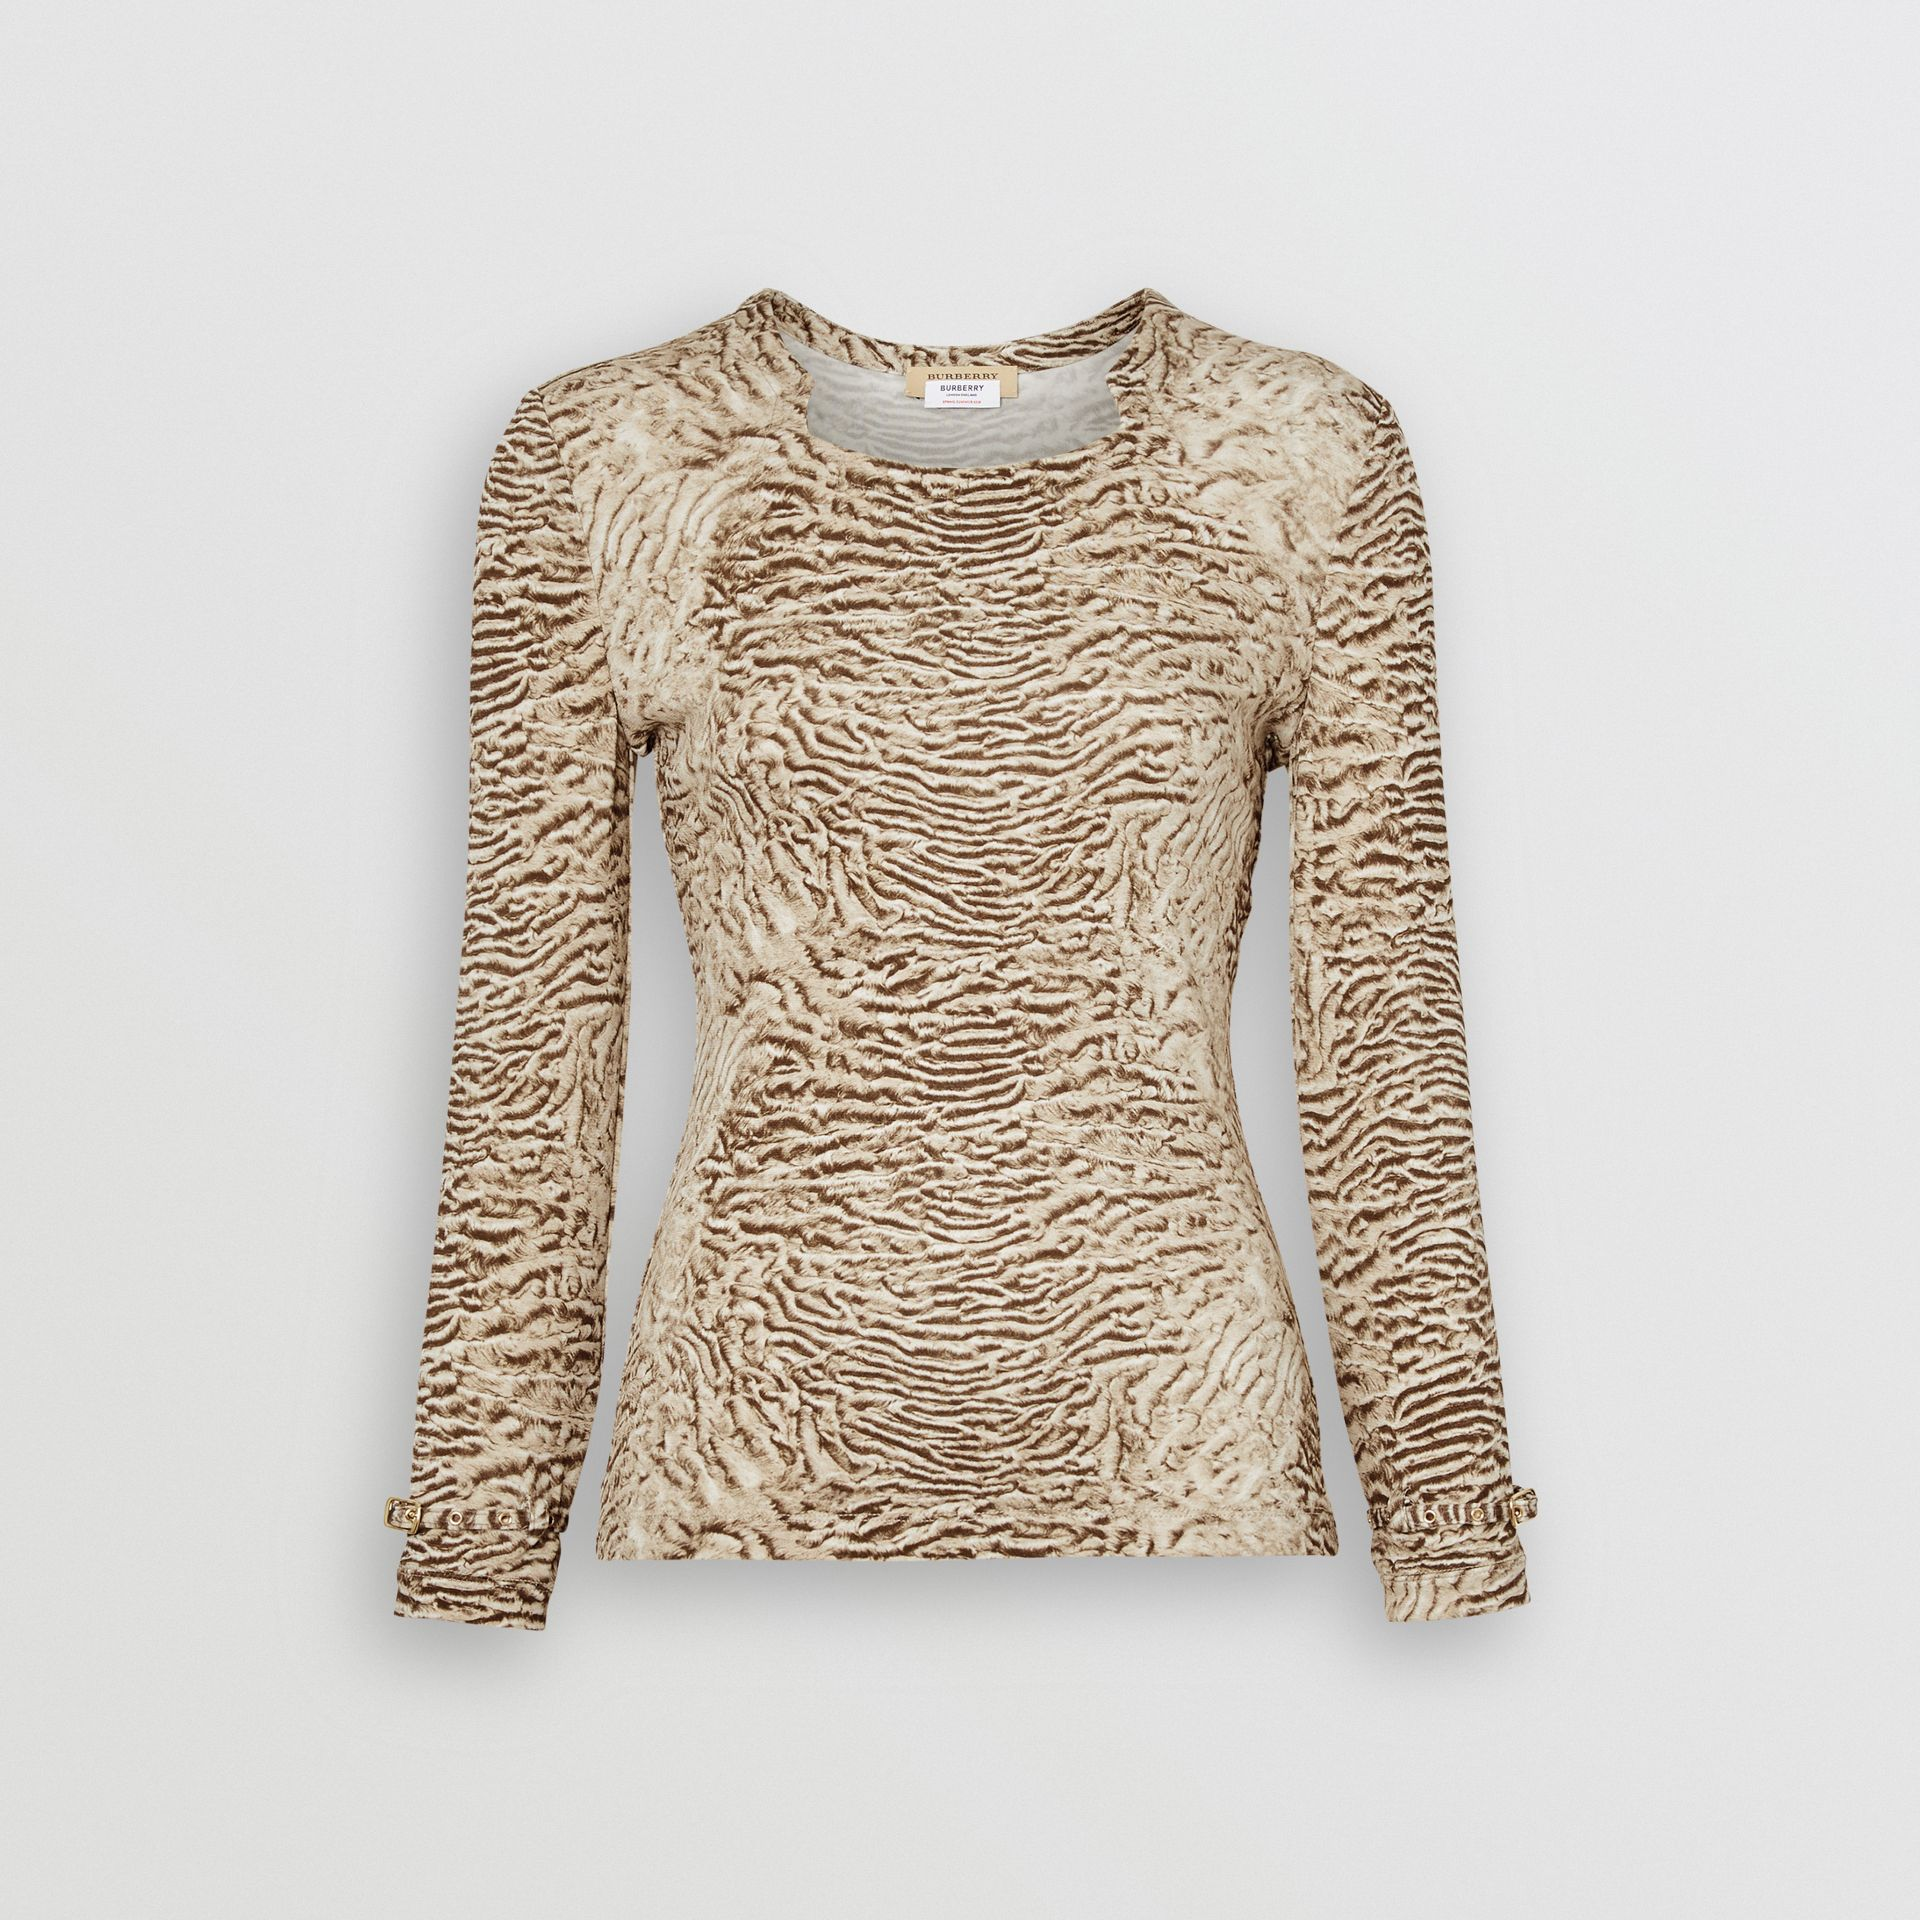 Astrakhan Print Stretch Jersey Top in Pale Taupe - Women | Burberry United Kingdom - gallery image 3